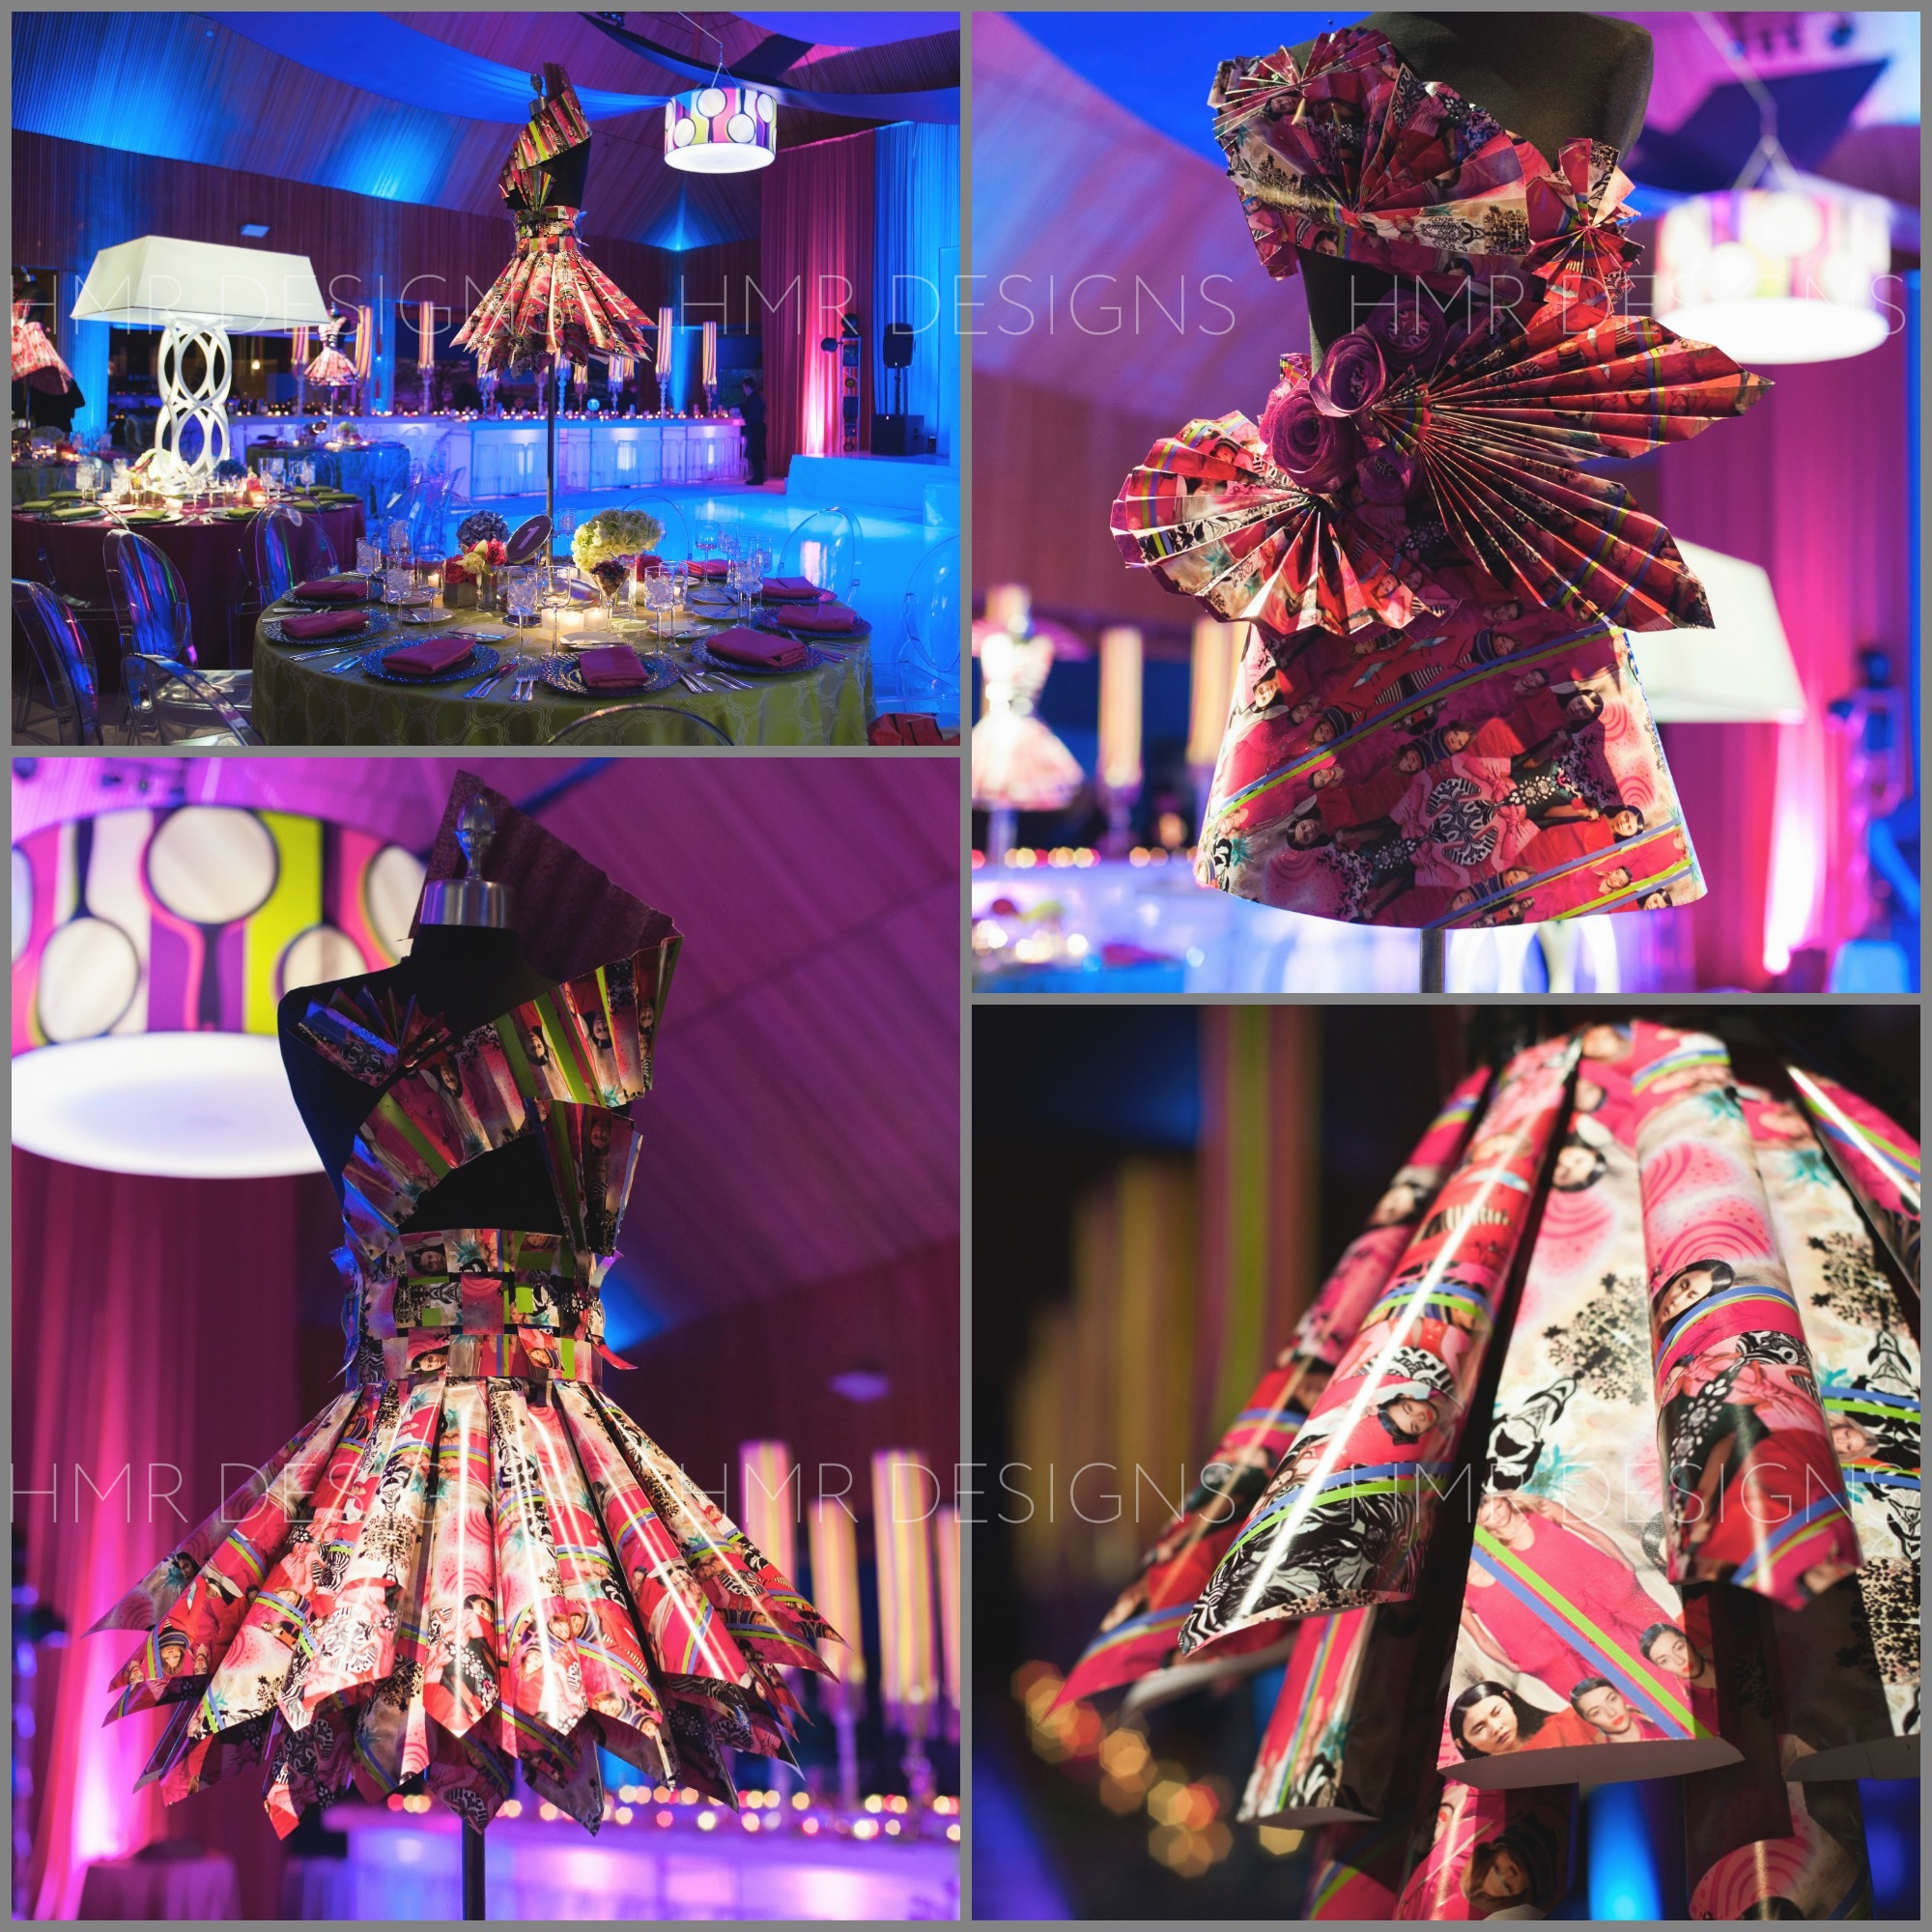 A fashion theme calls for centerpieces featuring bodices wearing dresses constructed entirely out of paper.